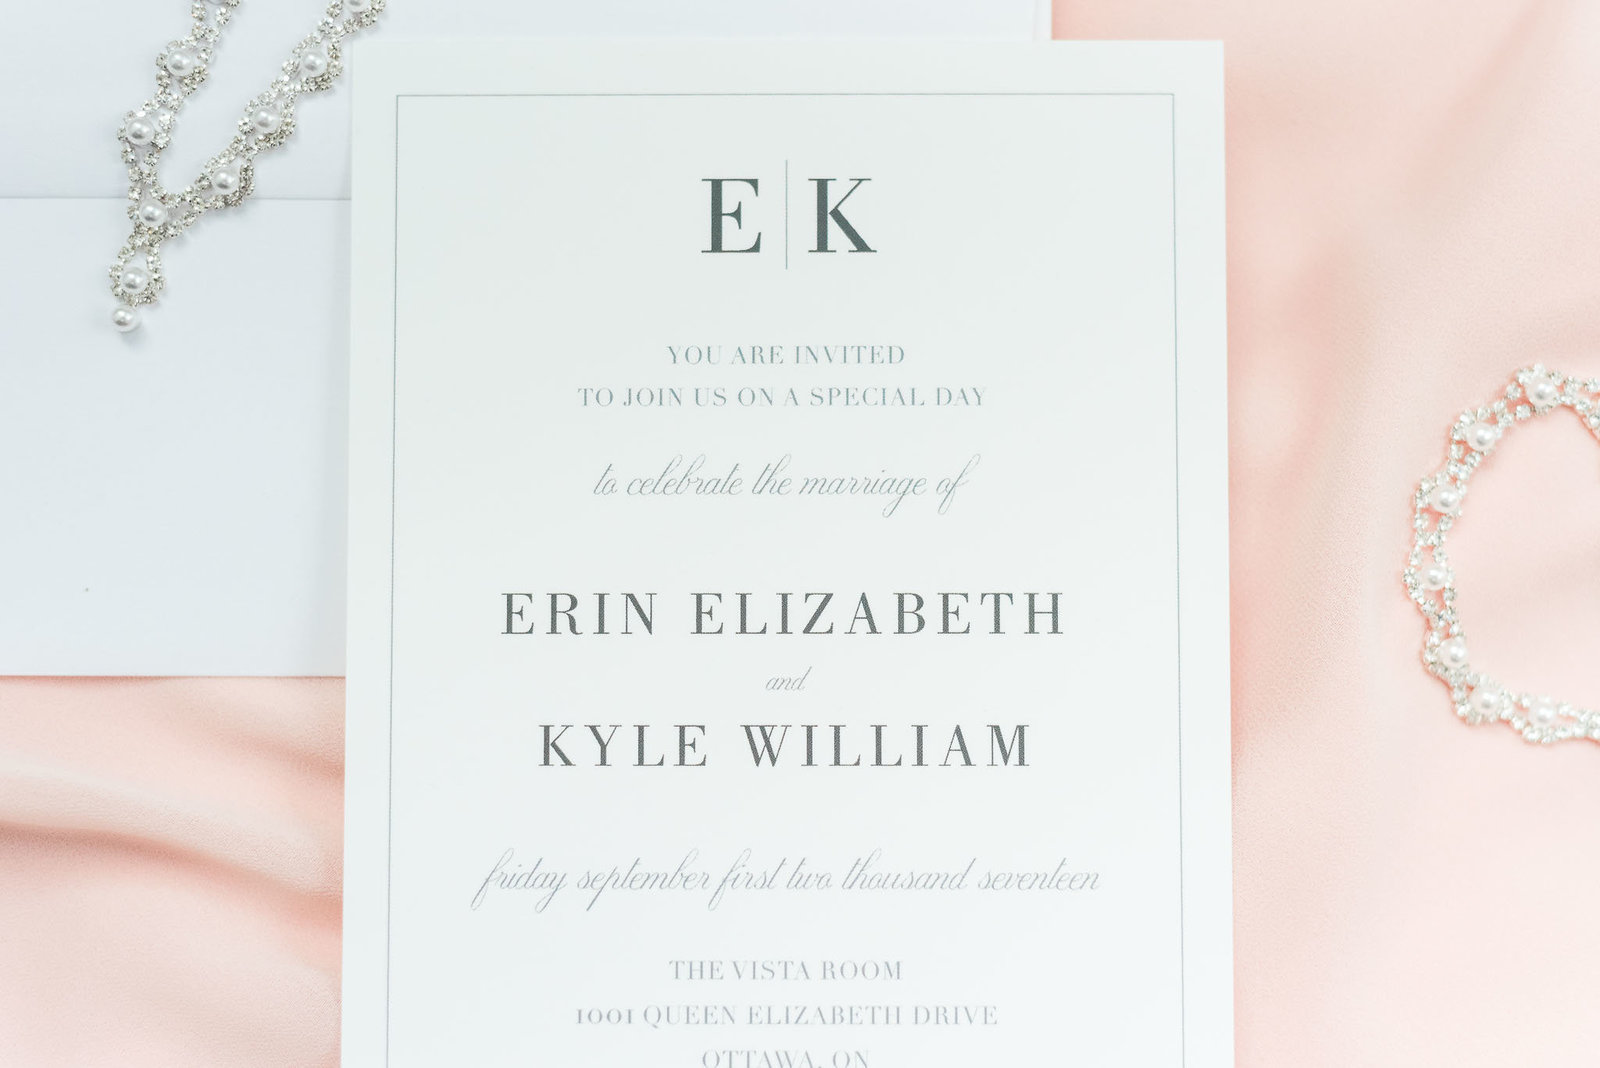 Erin-Kyle-Wedding-131018